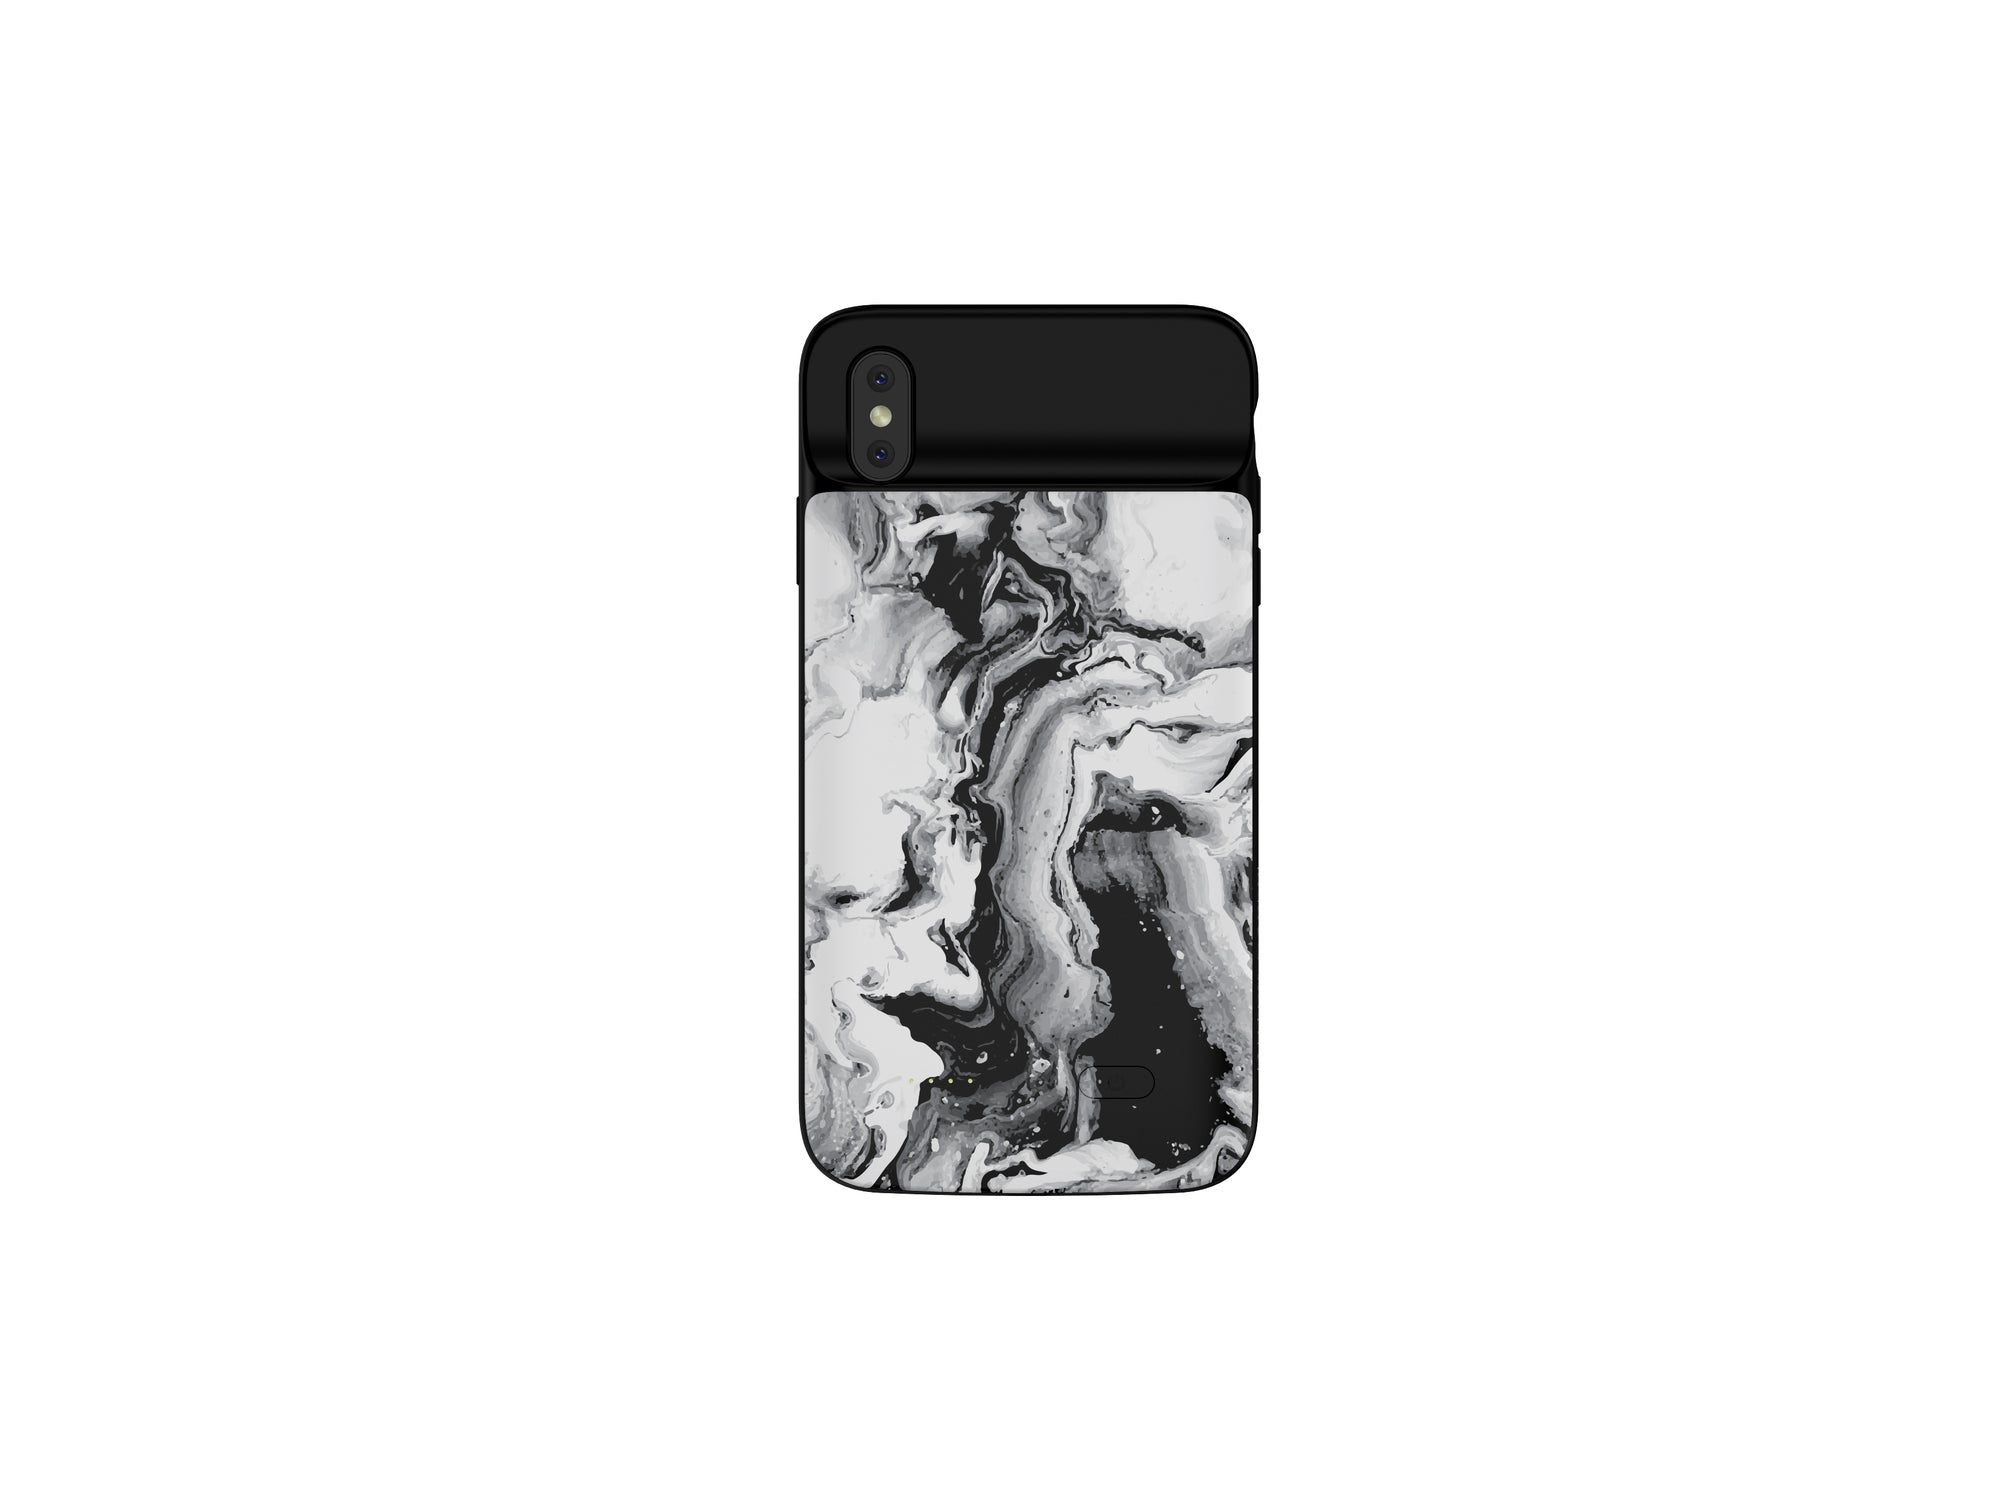 iPhone XS Max B&W Marble